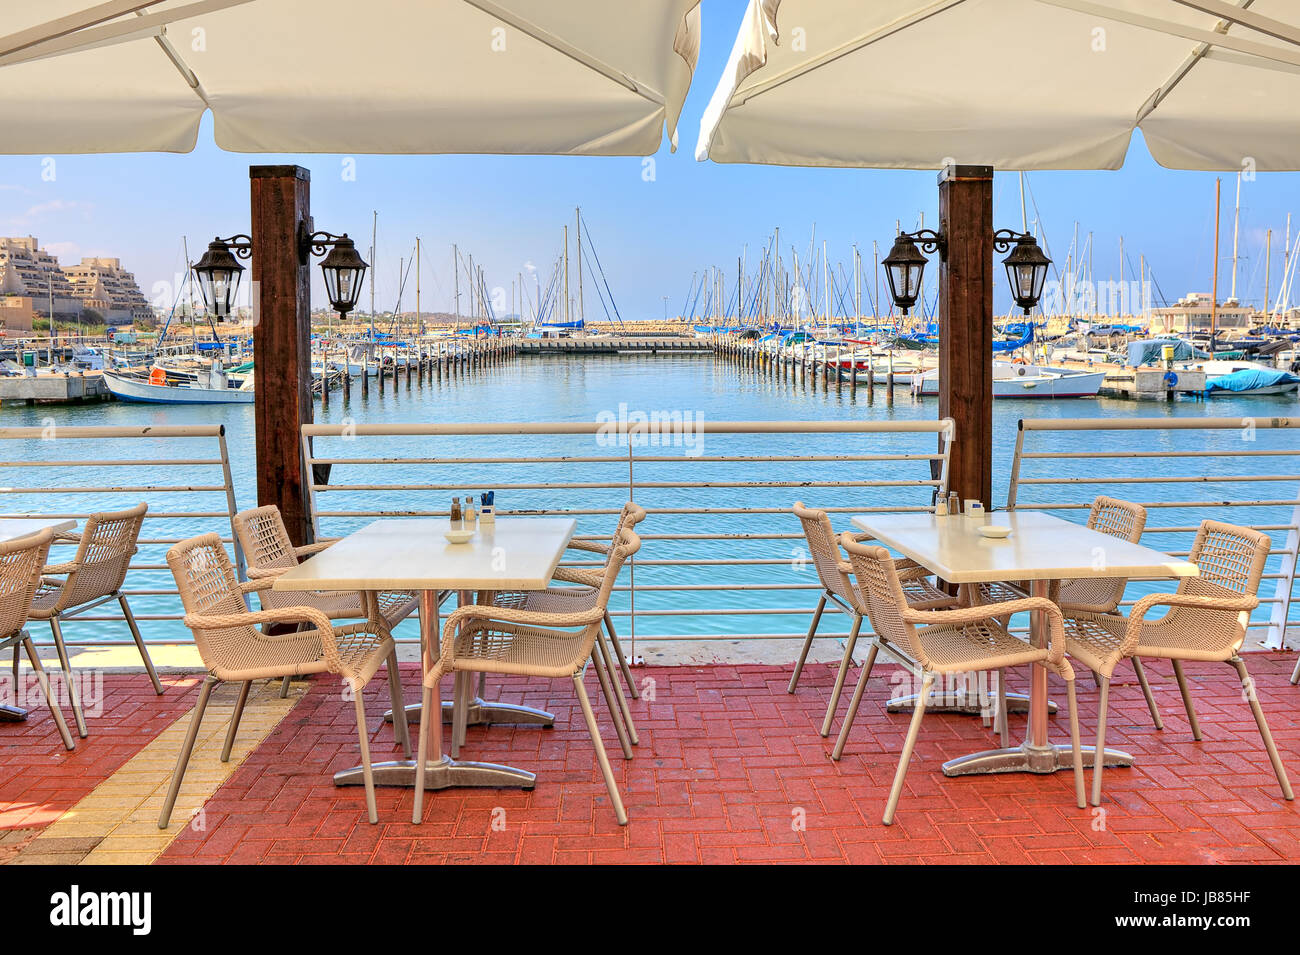 White tables and chairs of outdoor restaurant on promenade along marina on Mediterranean sea in Ashkelon, Israel. - Stock Image